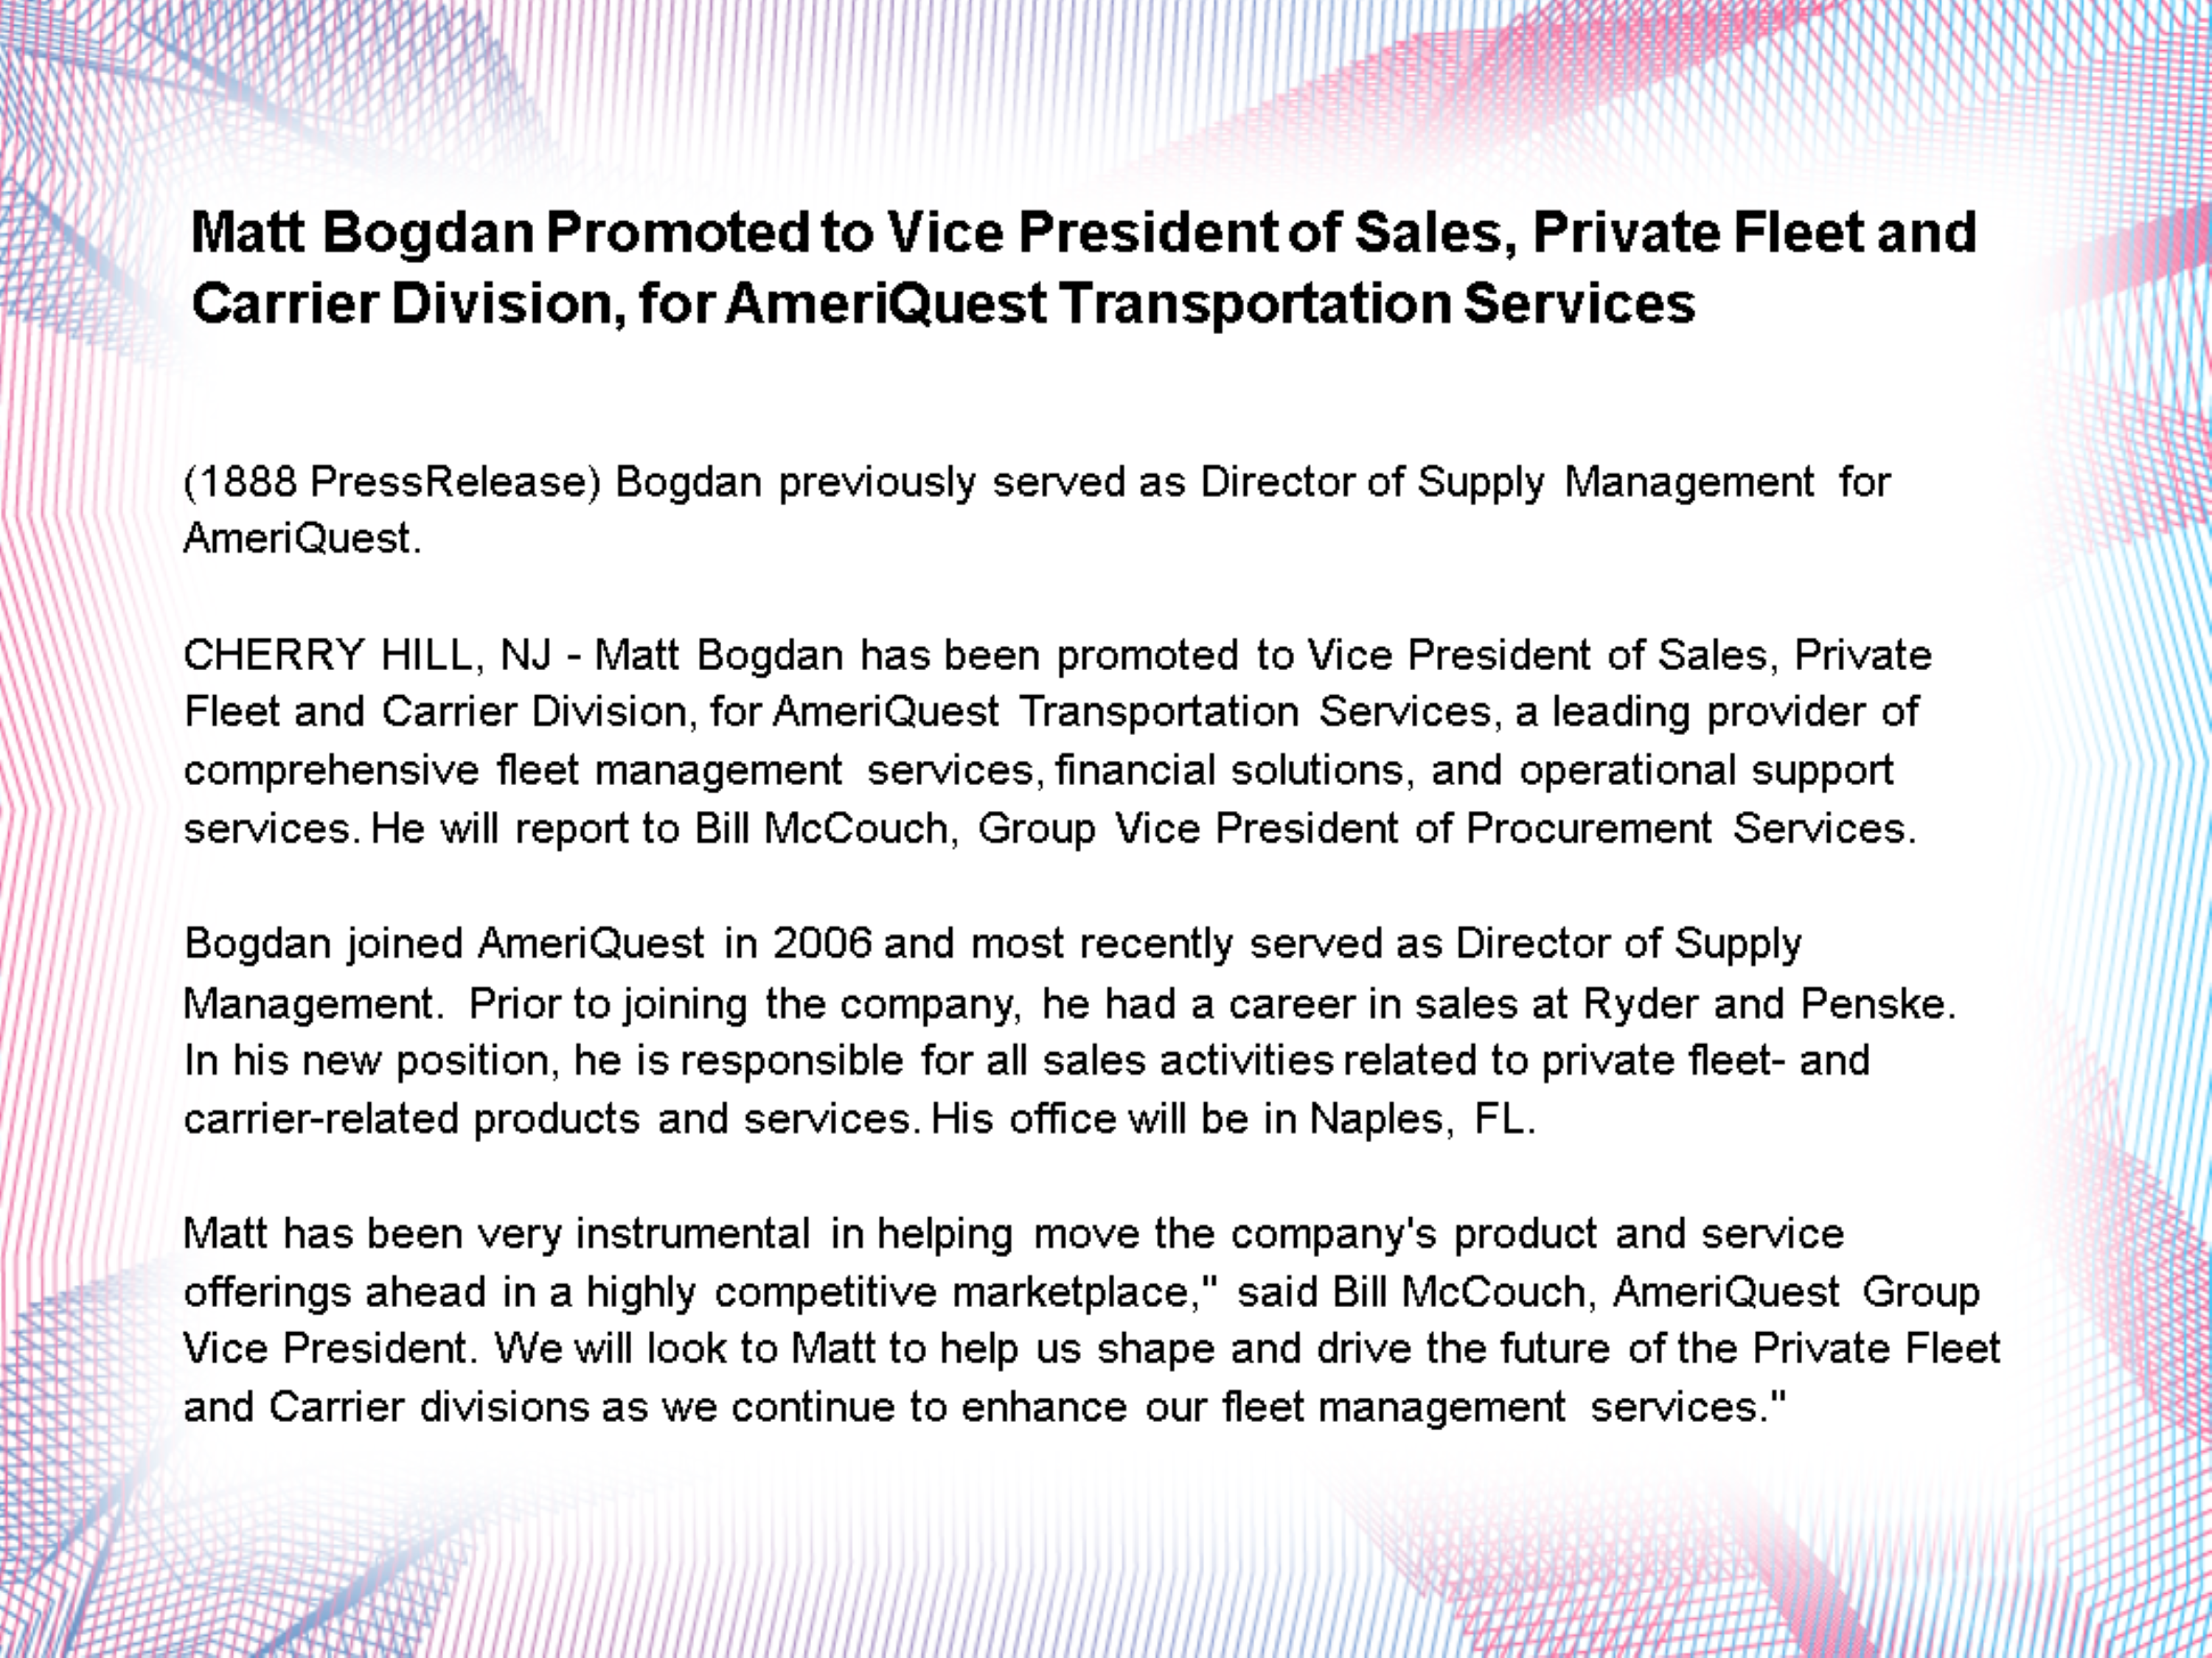 Matt Bogdan Promoted to Vice President of Sales, Private Fleet and Carrier Division